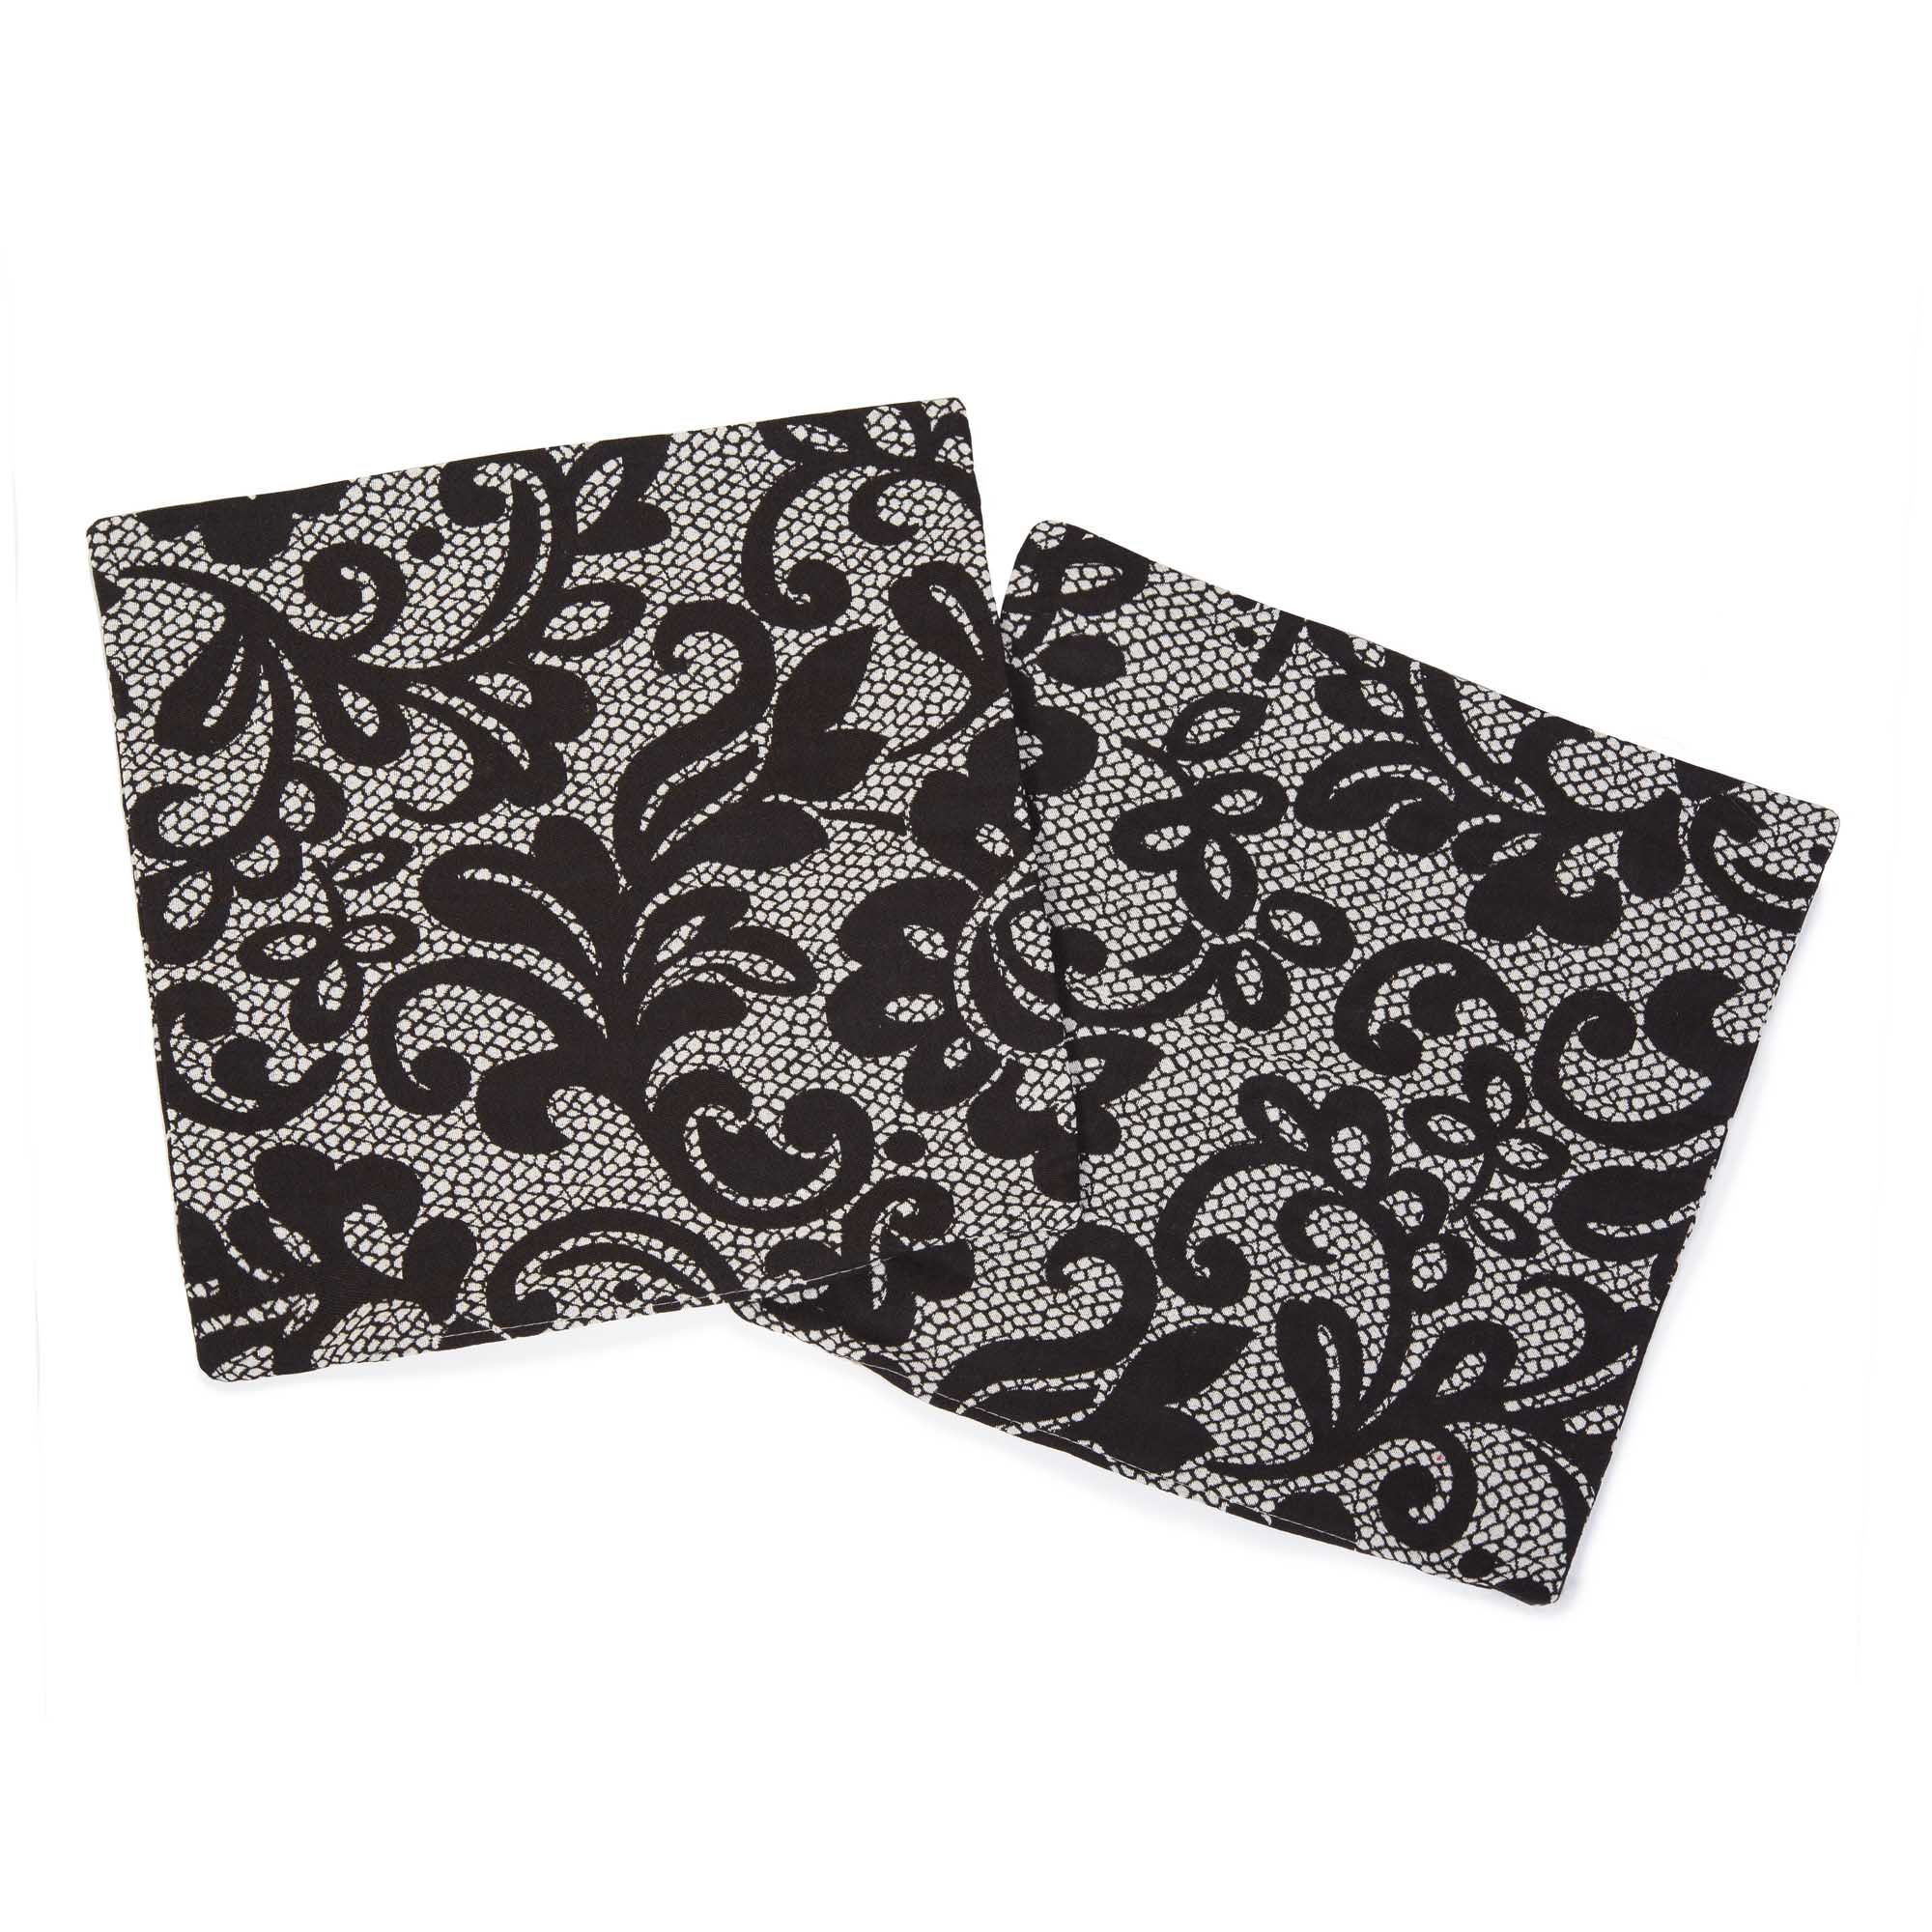 Qvc Stoneline Imagination By Suardi Set 2 Copricuscini Arredo Astrid In Jacquard